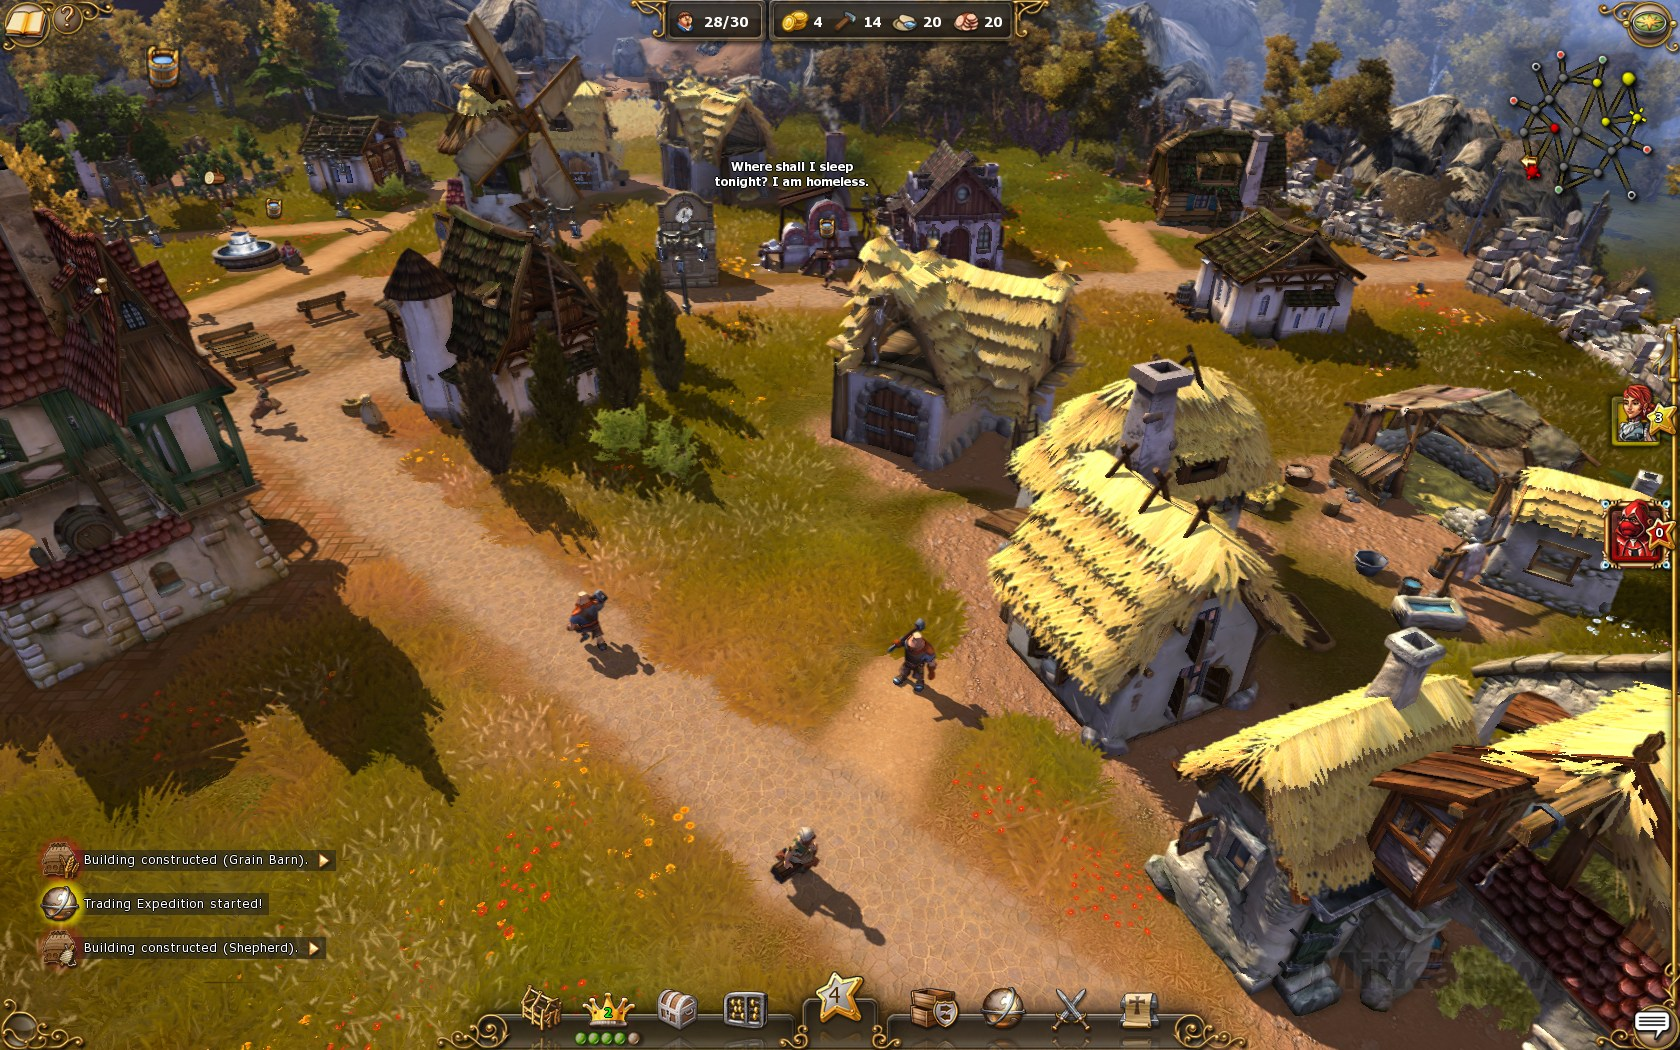 STRATEGY The Settlers 7